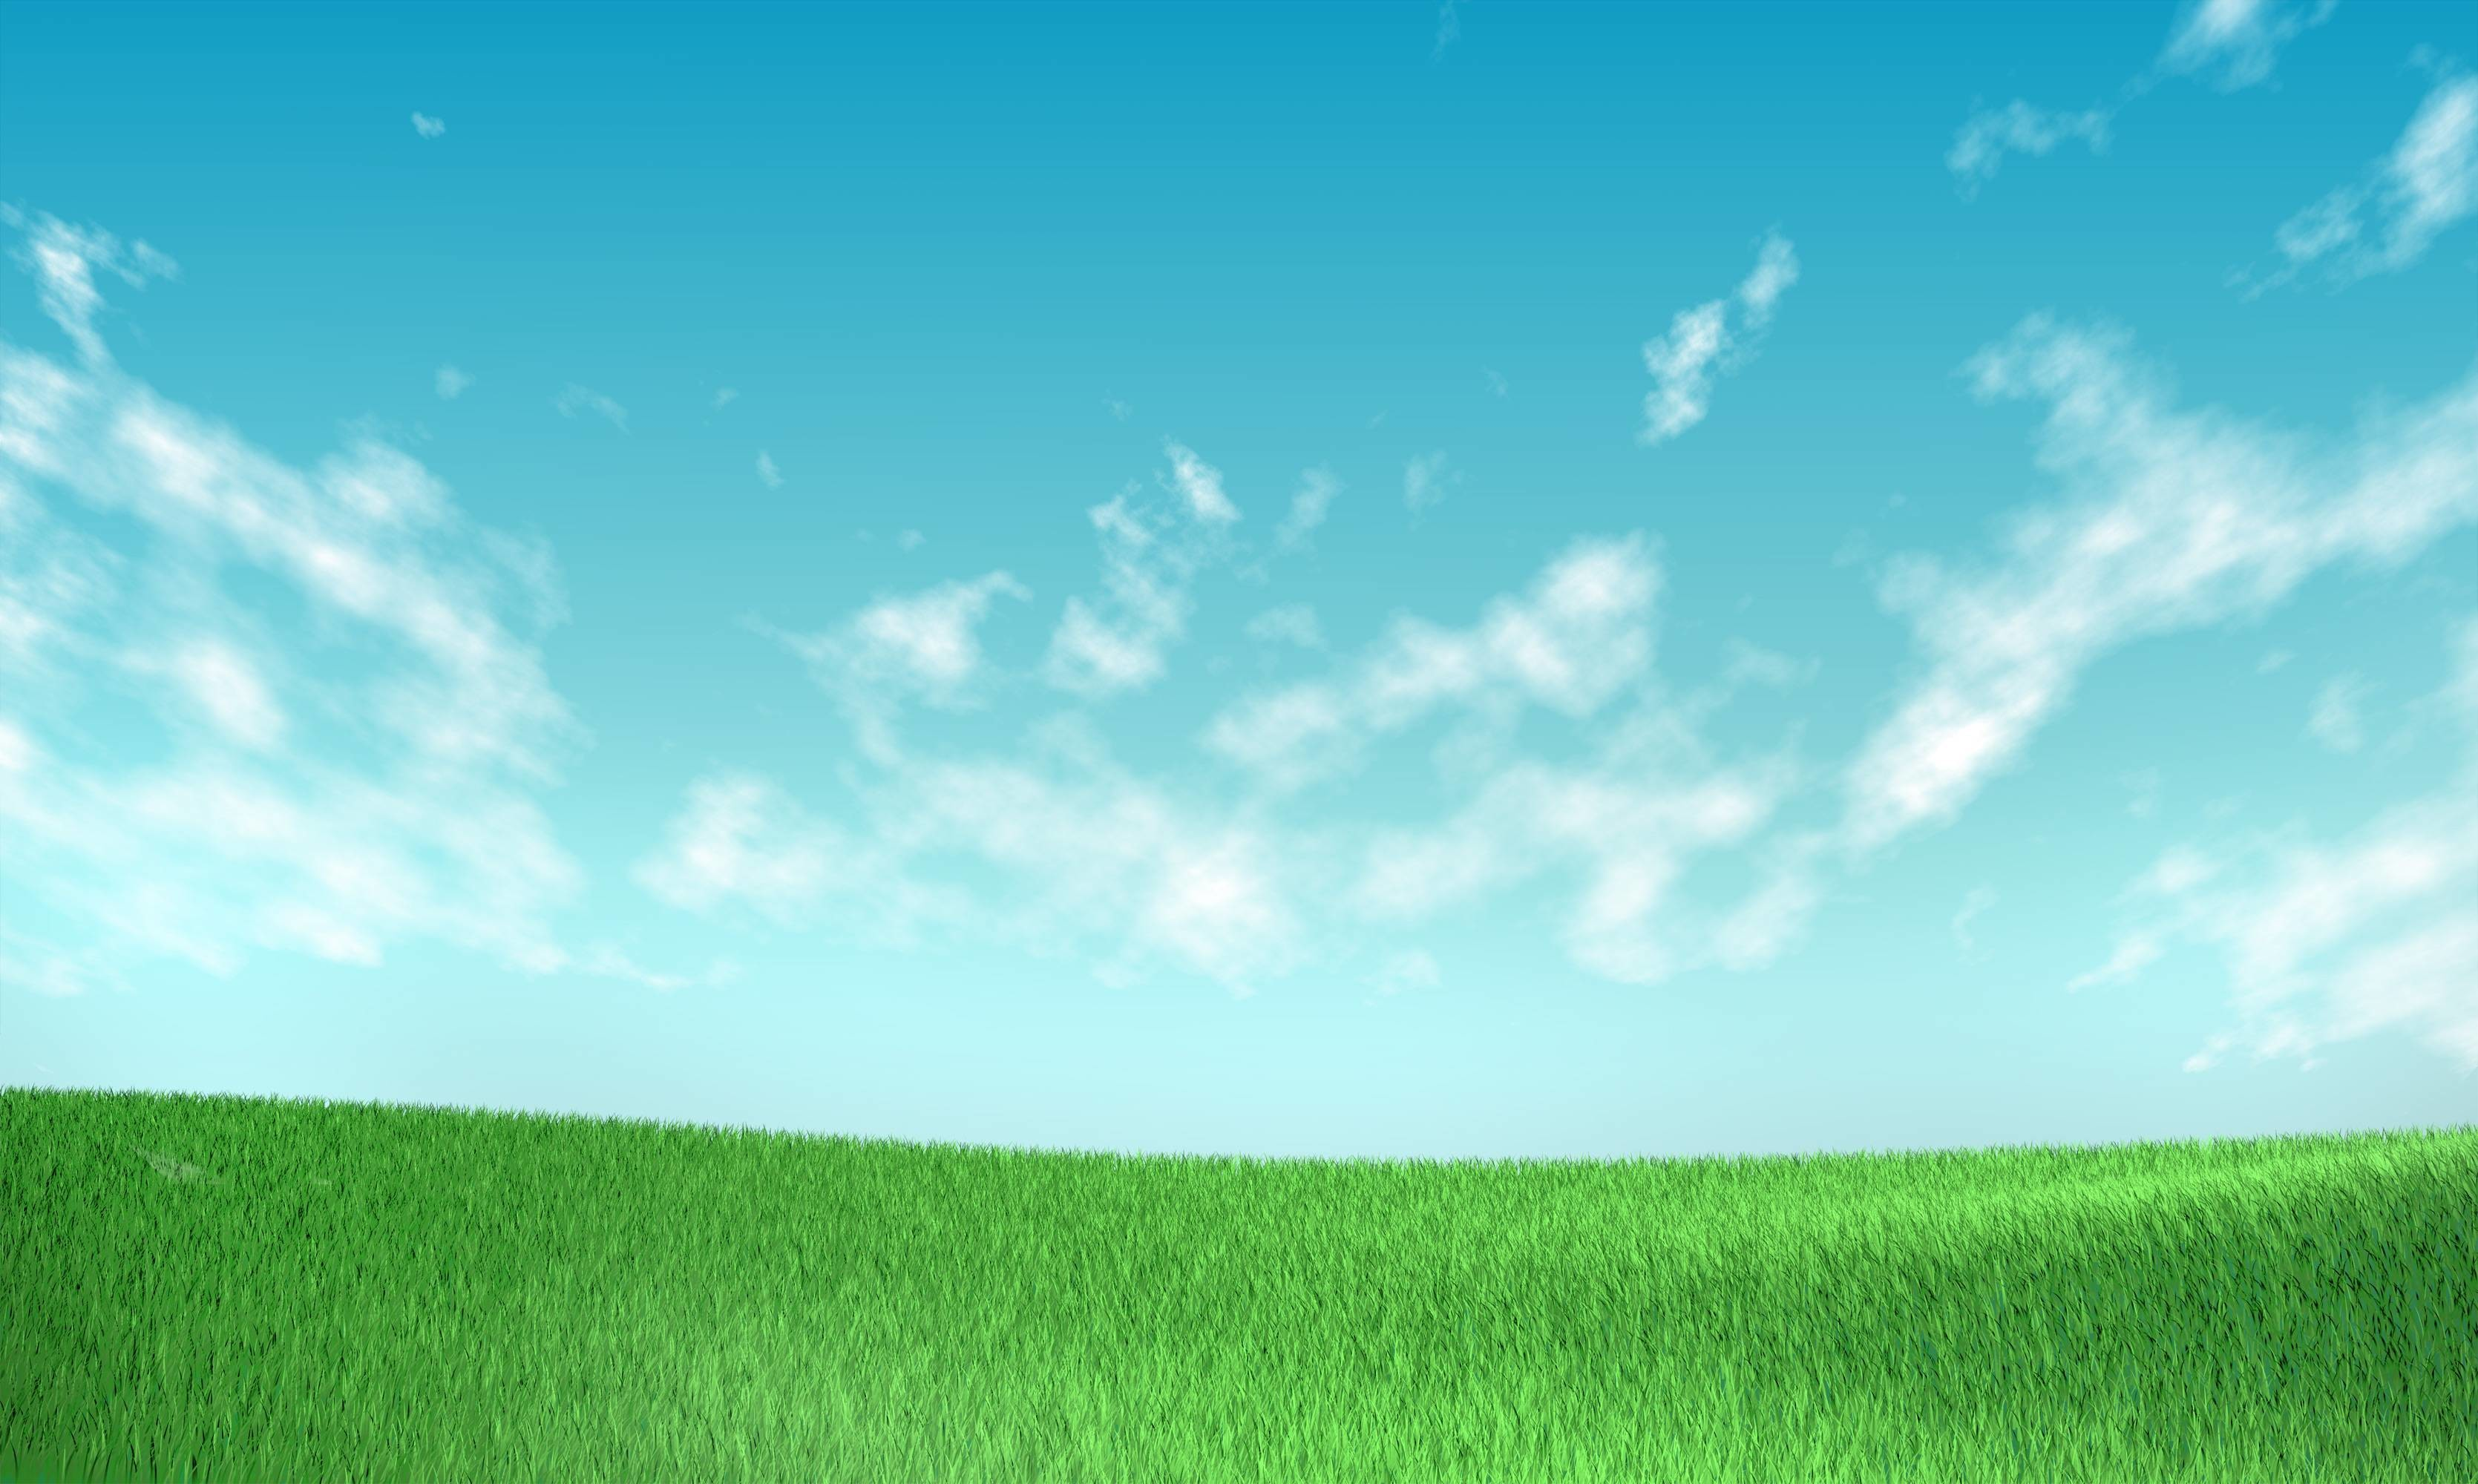 Grass And Sky Wallpaper 71 Images